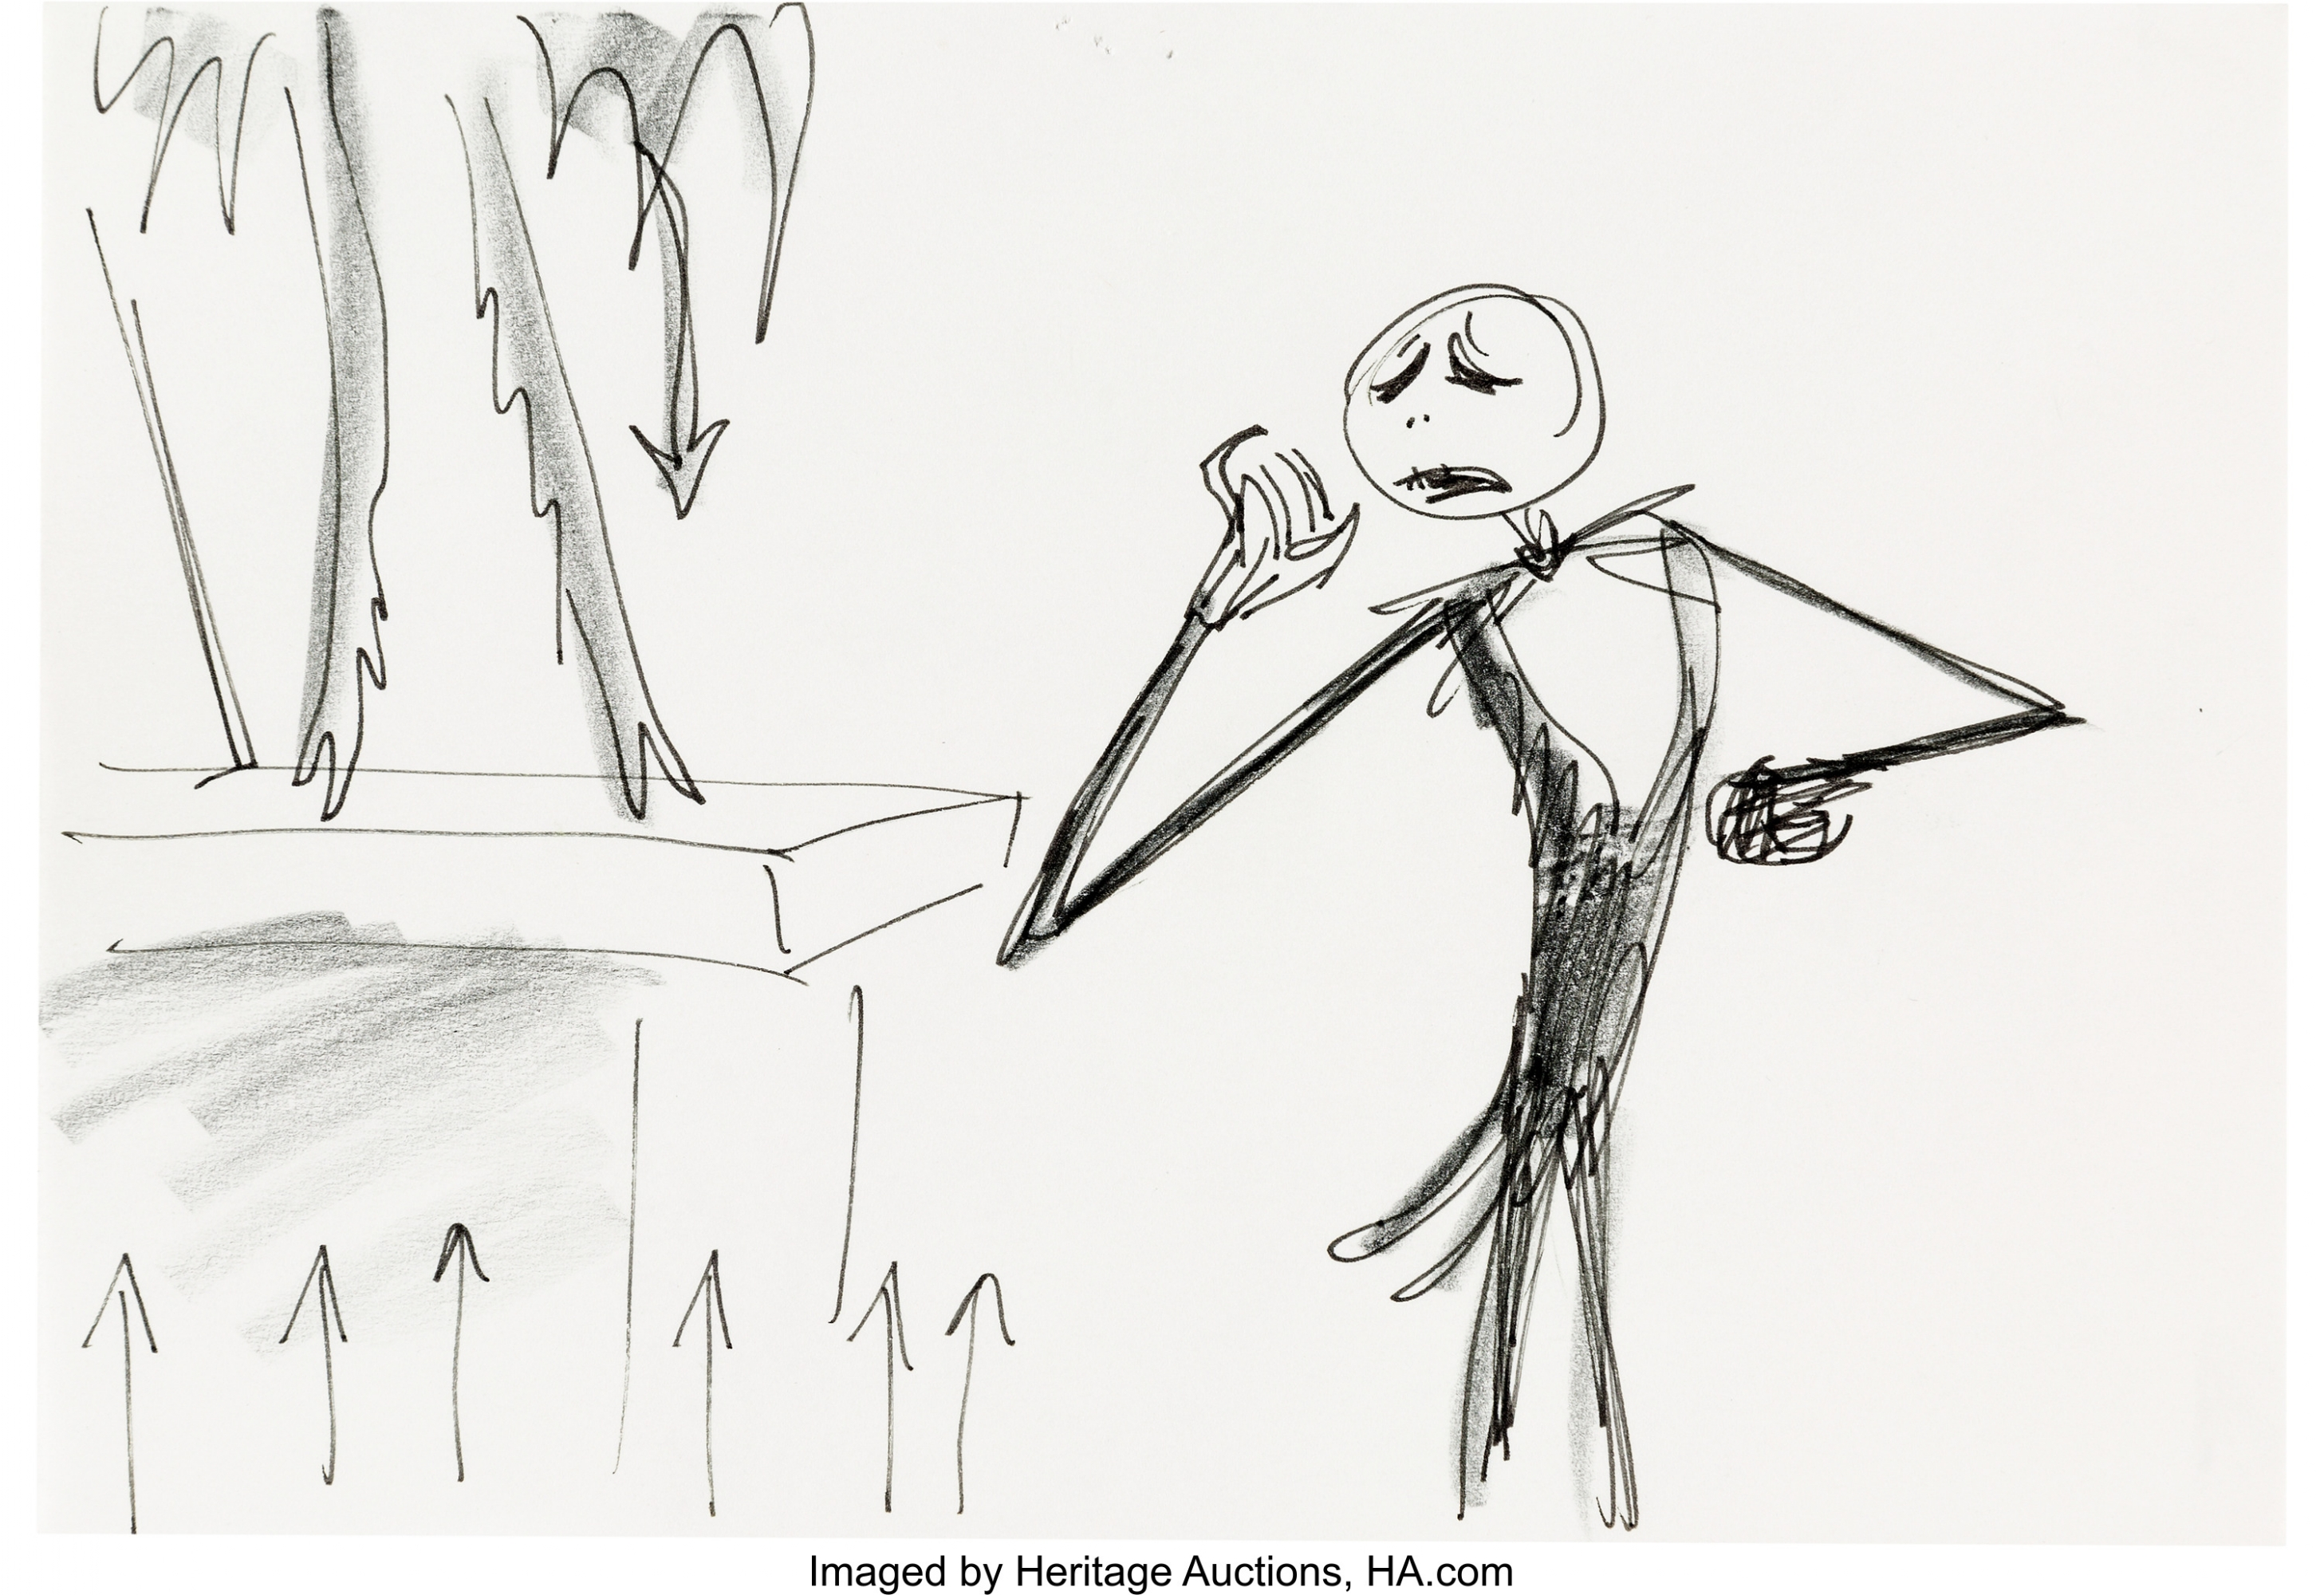 Tim Burton Nightmare Before Christmas Artwork.Tim Burton S Nightmare Before Christmas Storyboard